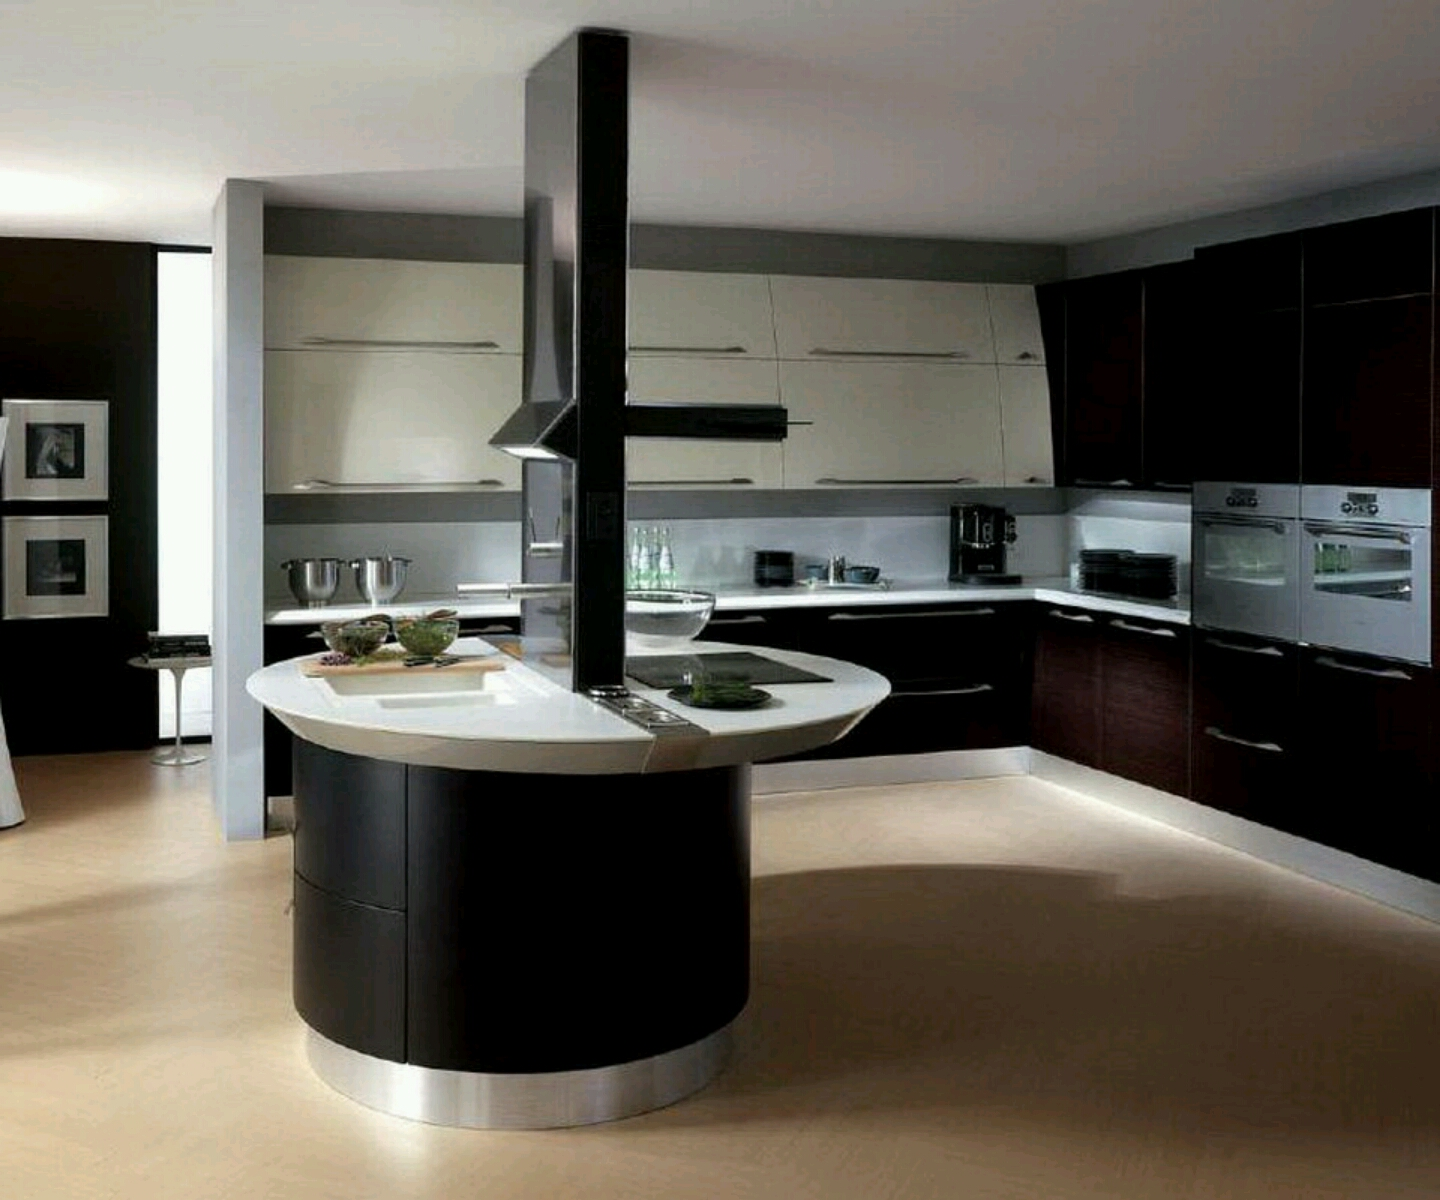 Modern kitchen cabinet design for New kitchen design ideas